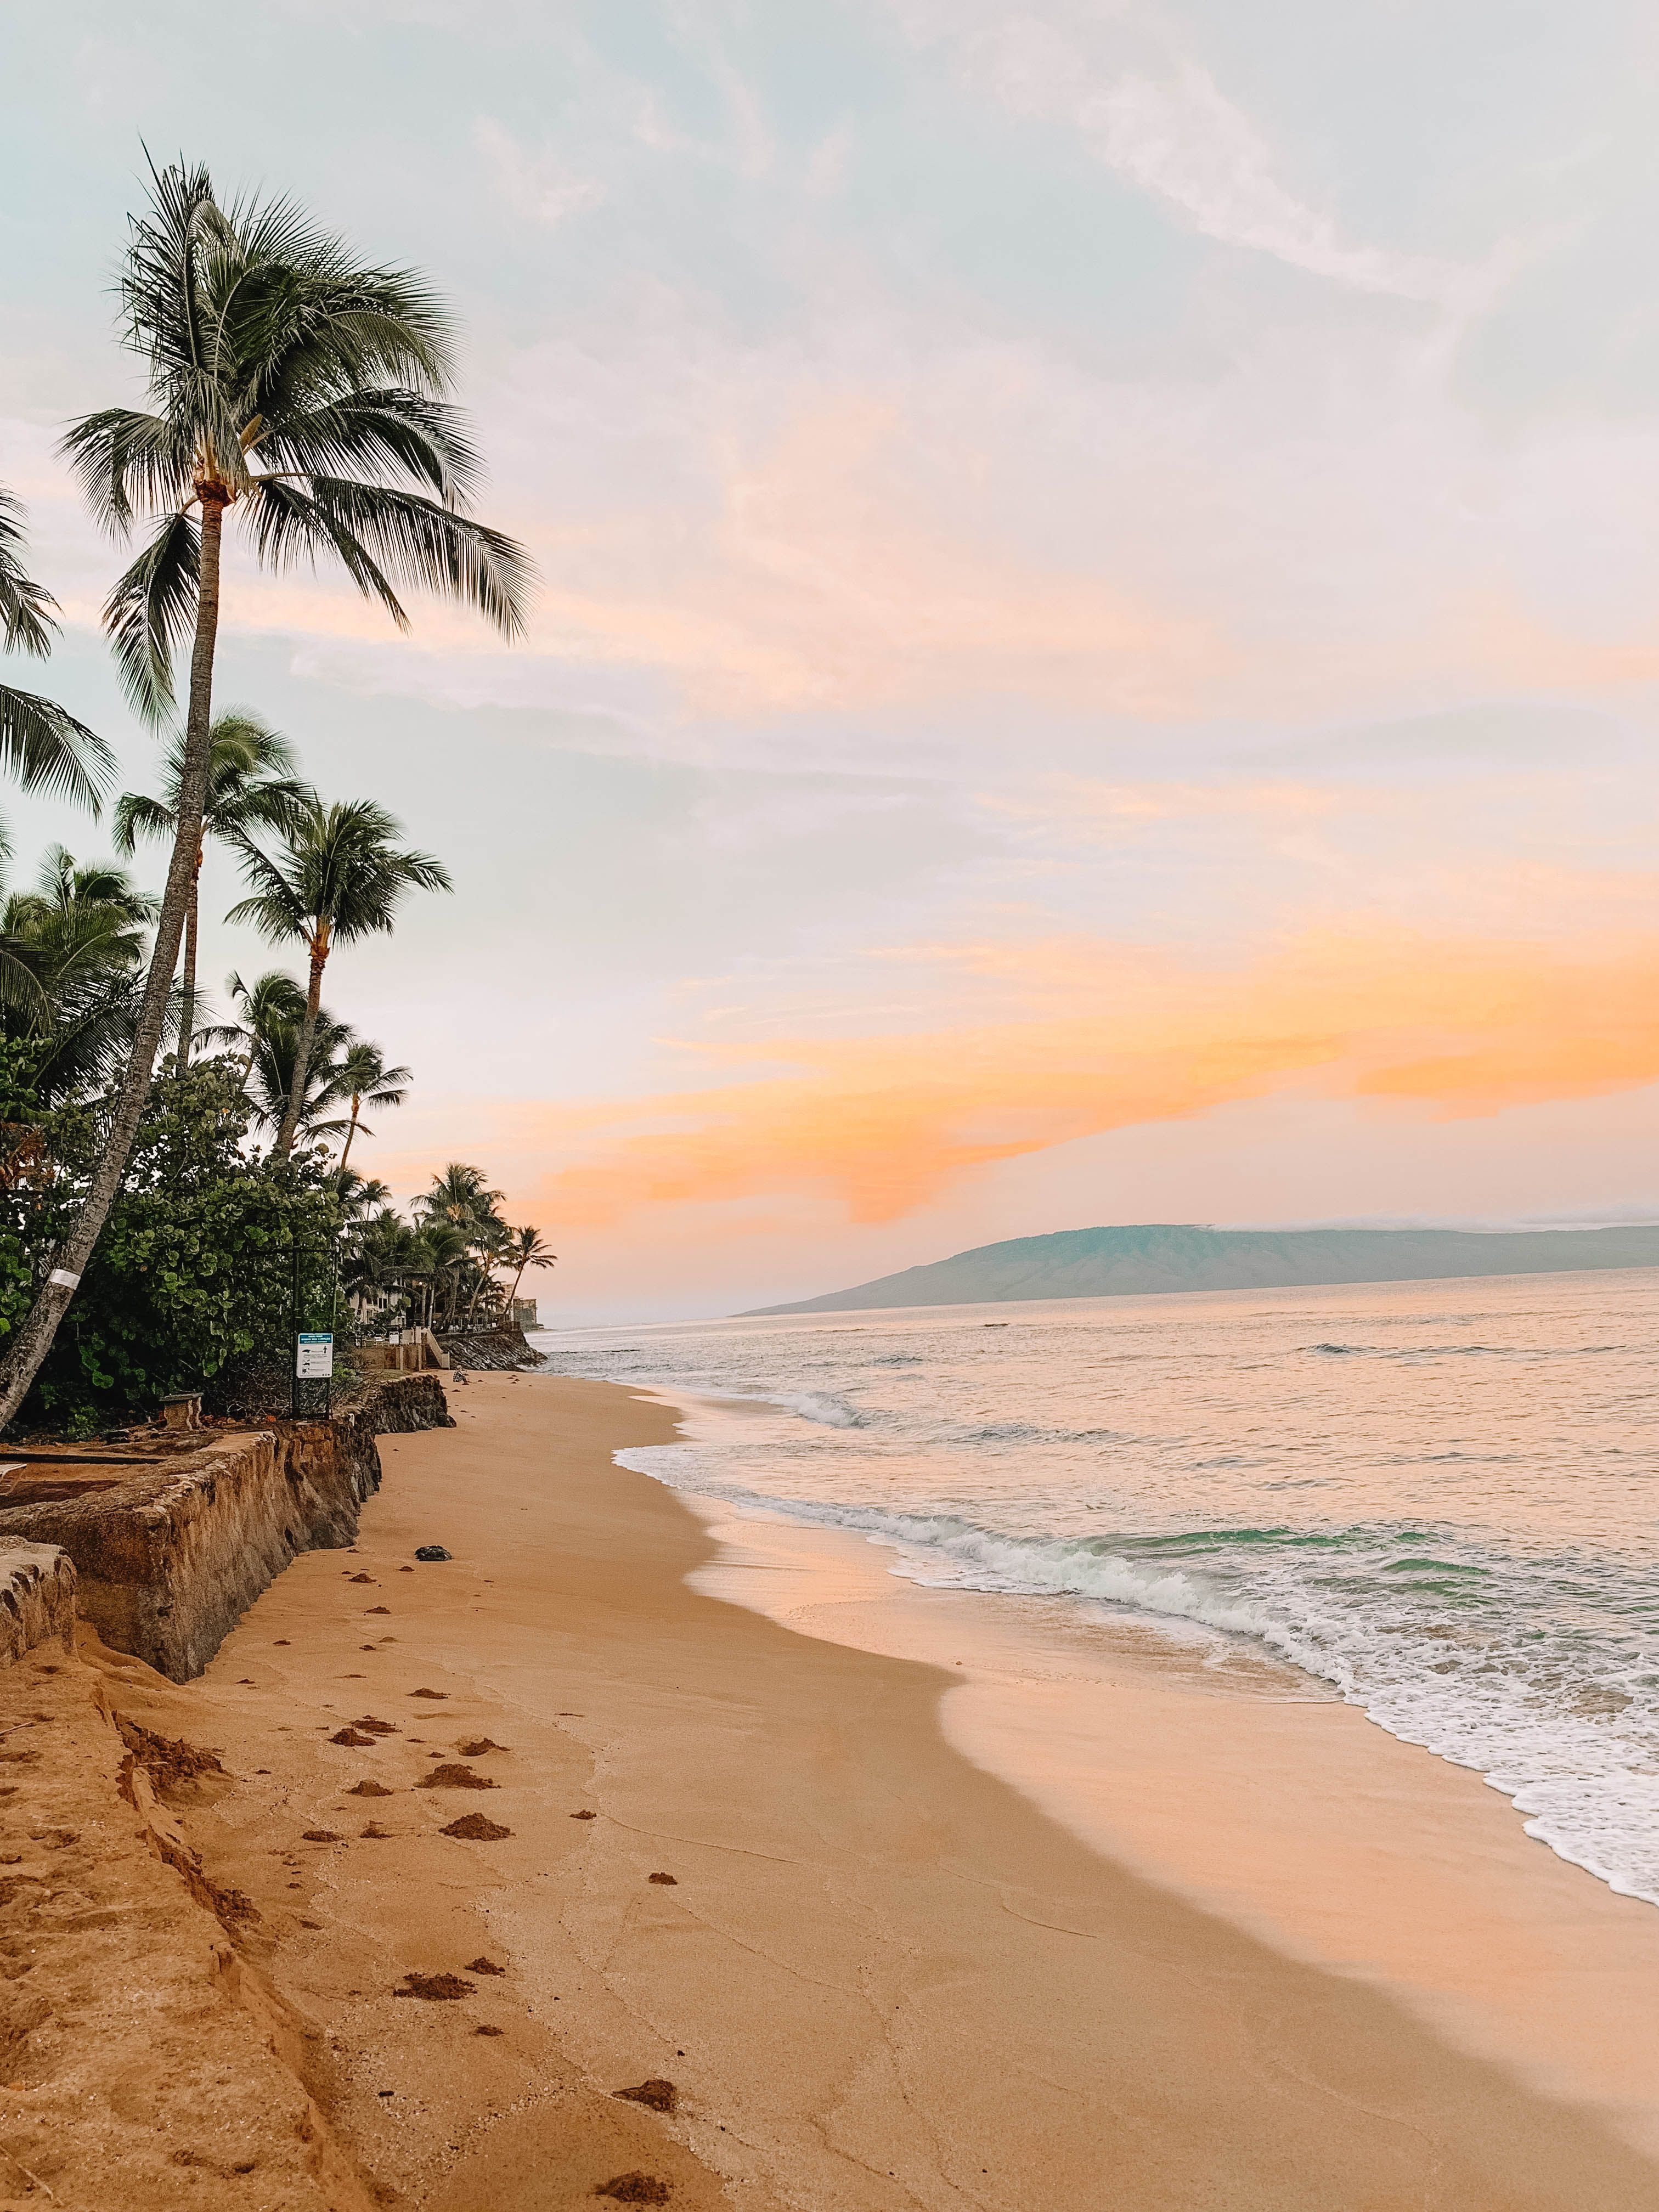 Our Trip To Maui In Hawaii, Fun Things To Do In Maui -  Our Trip To Maui Hawaii, Maui Travel Guide #mauihawaii #maui #mauiguide #bucketlist #hawaii